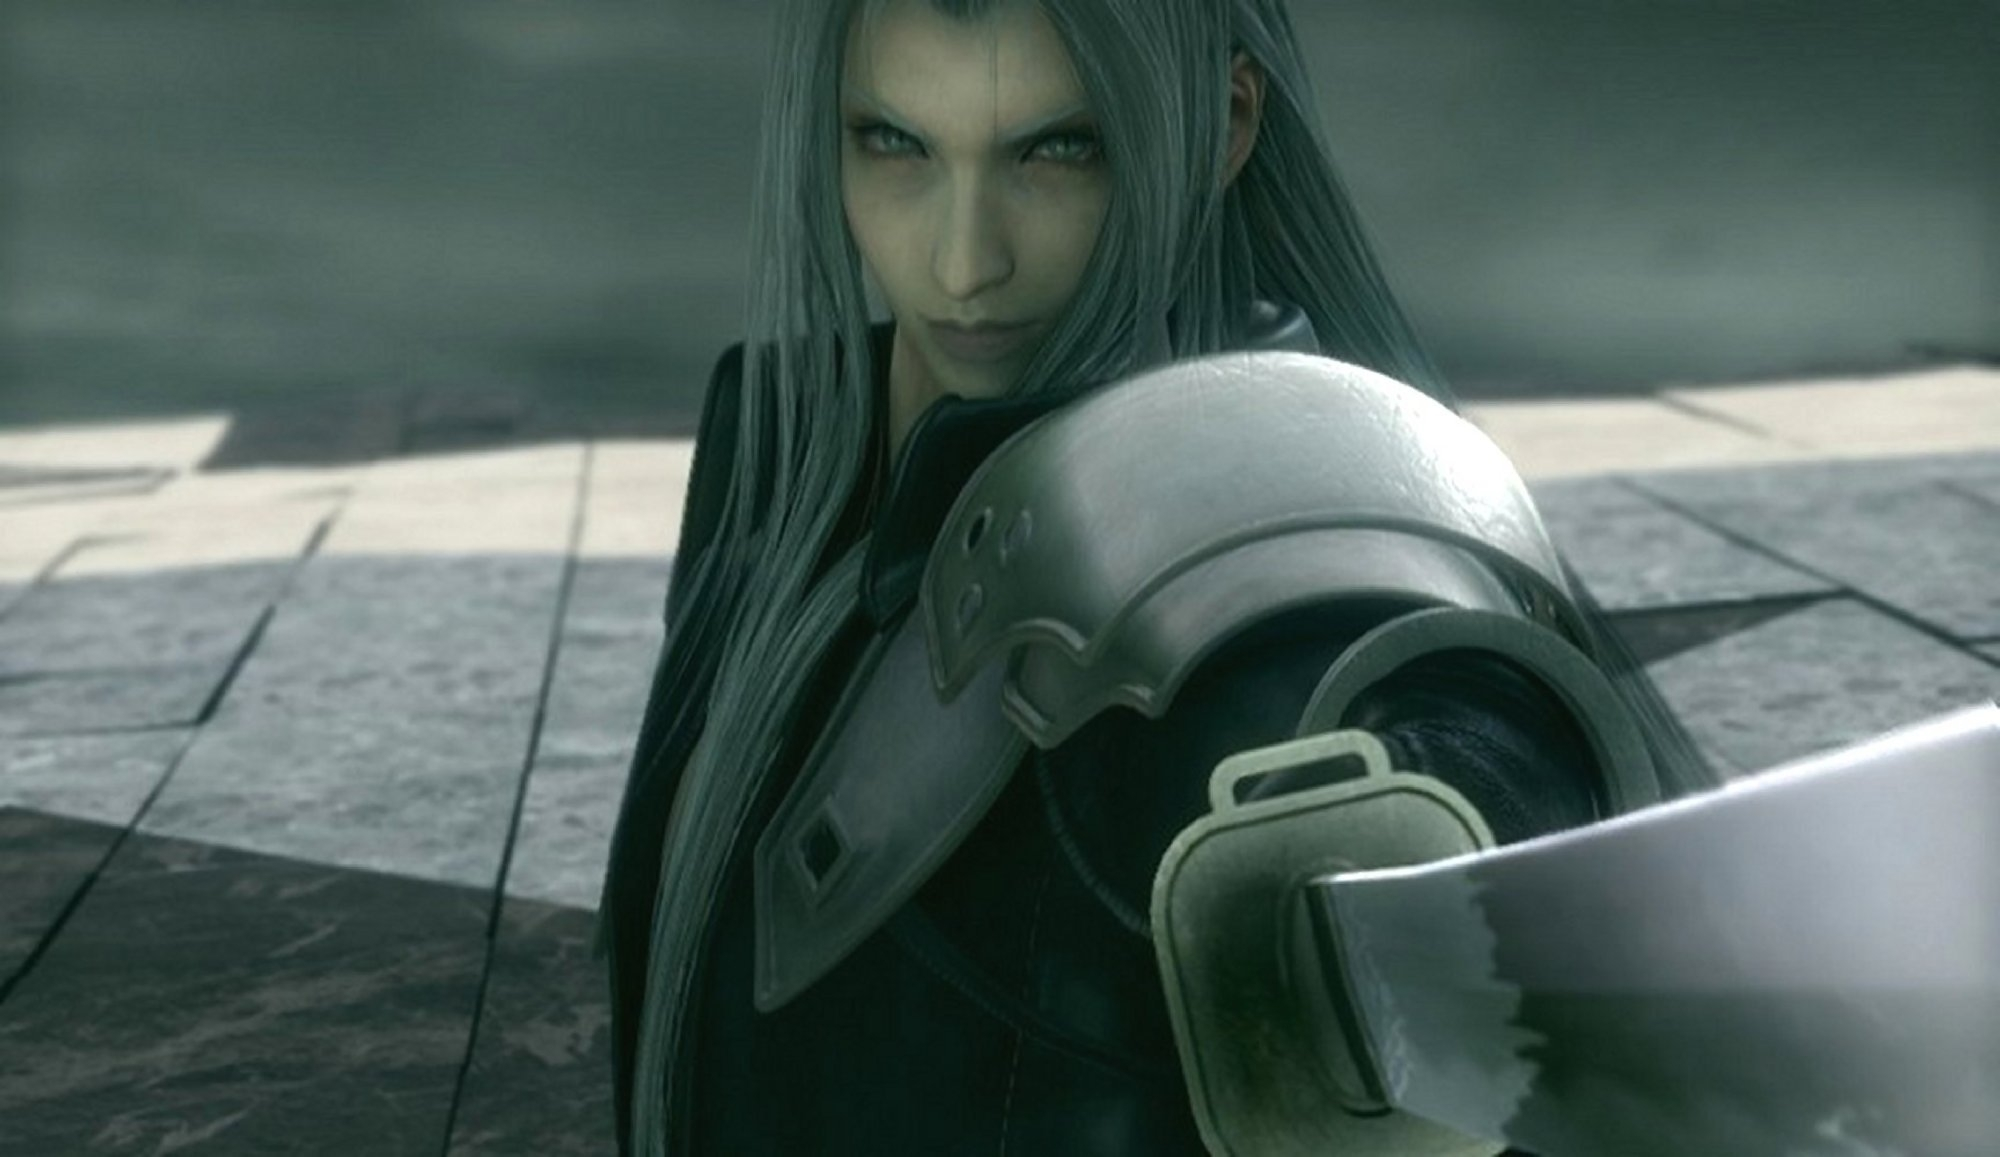 THIS IS SEPHIROTH MOTHERFUCKERS!